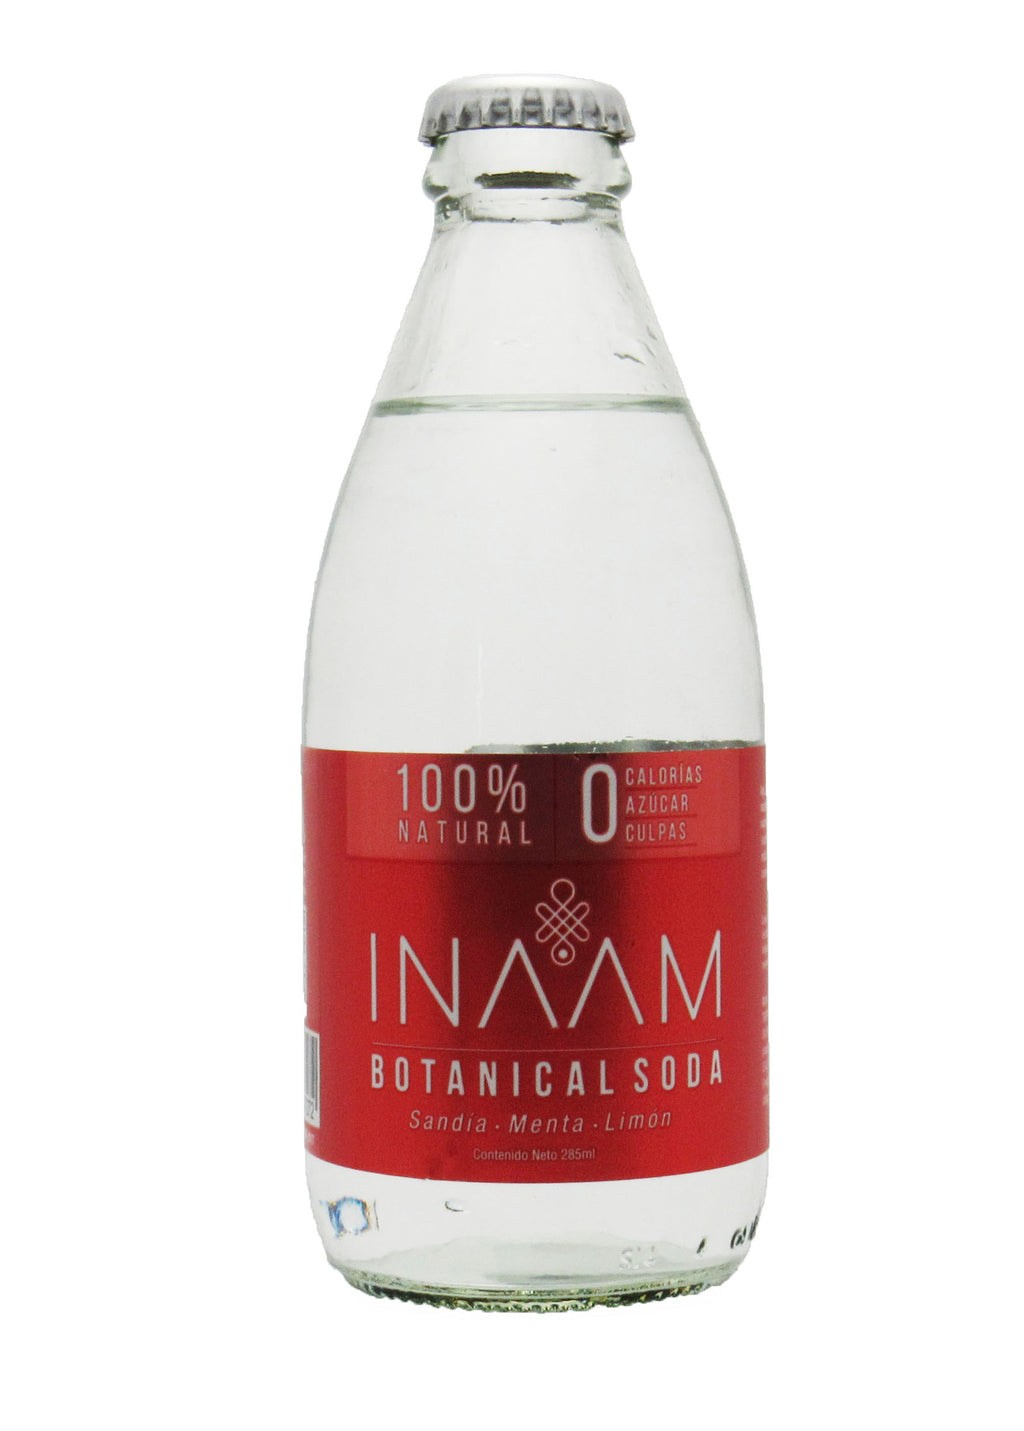 Botanical Soda 285ml (INAAM) Sandia Menta